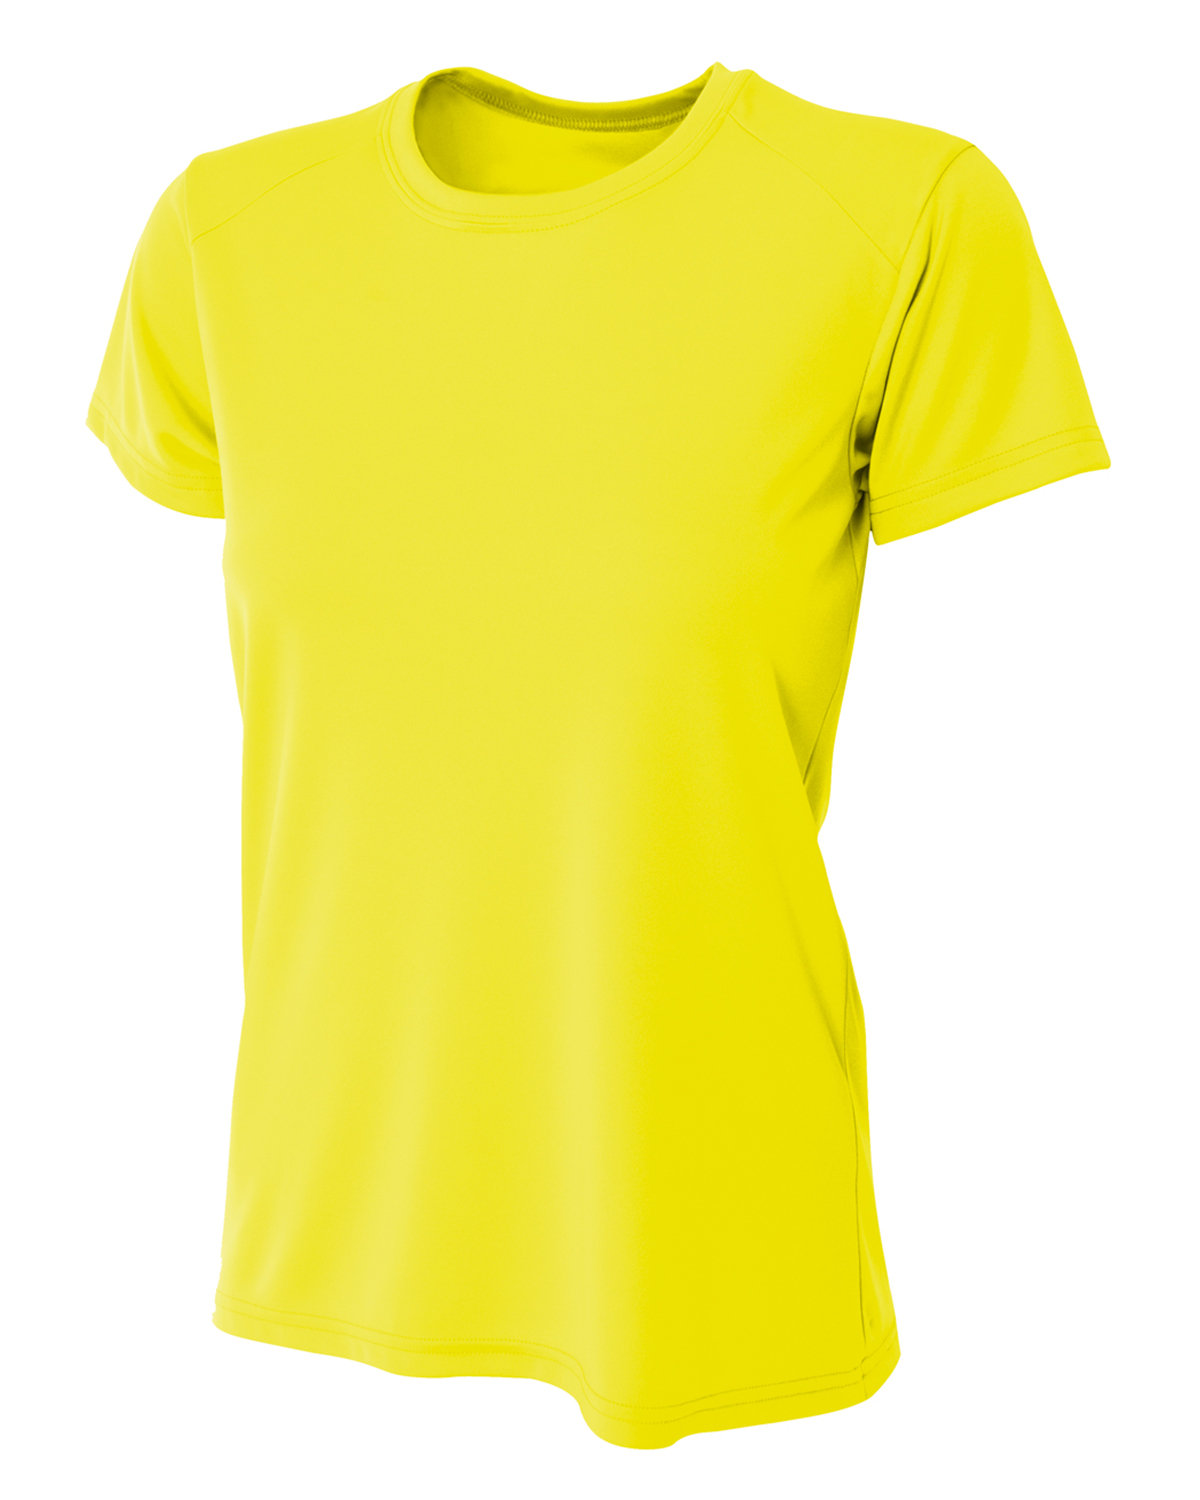 A4 Ladies' Cooling Performance T-Shirt SAFETY YELLOW